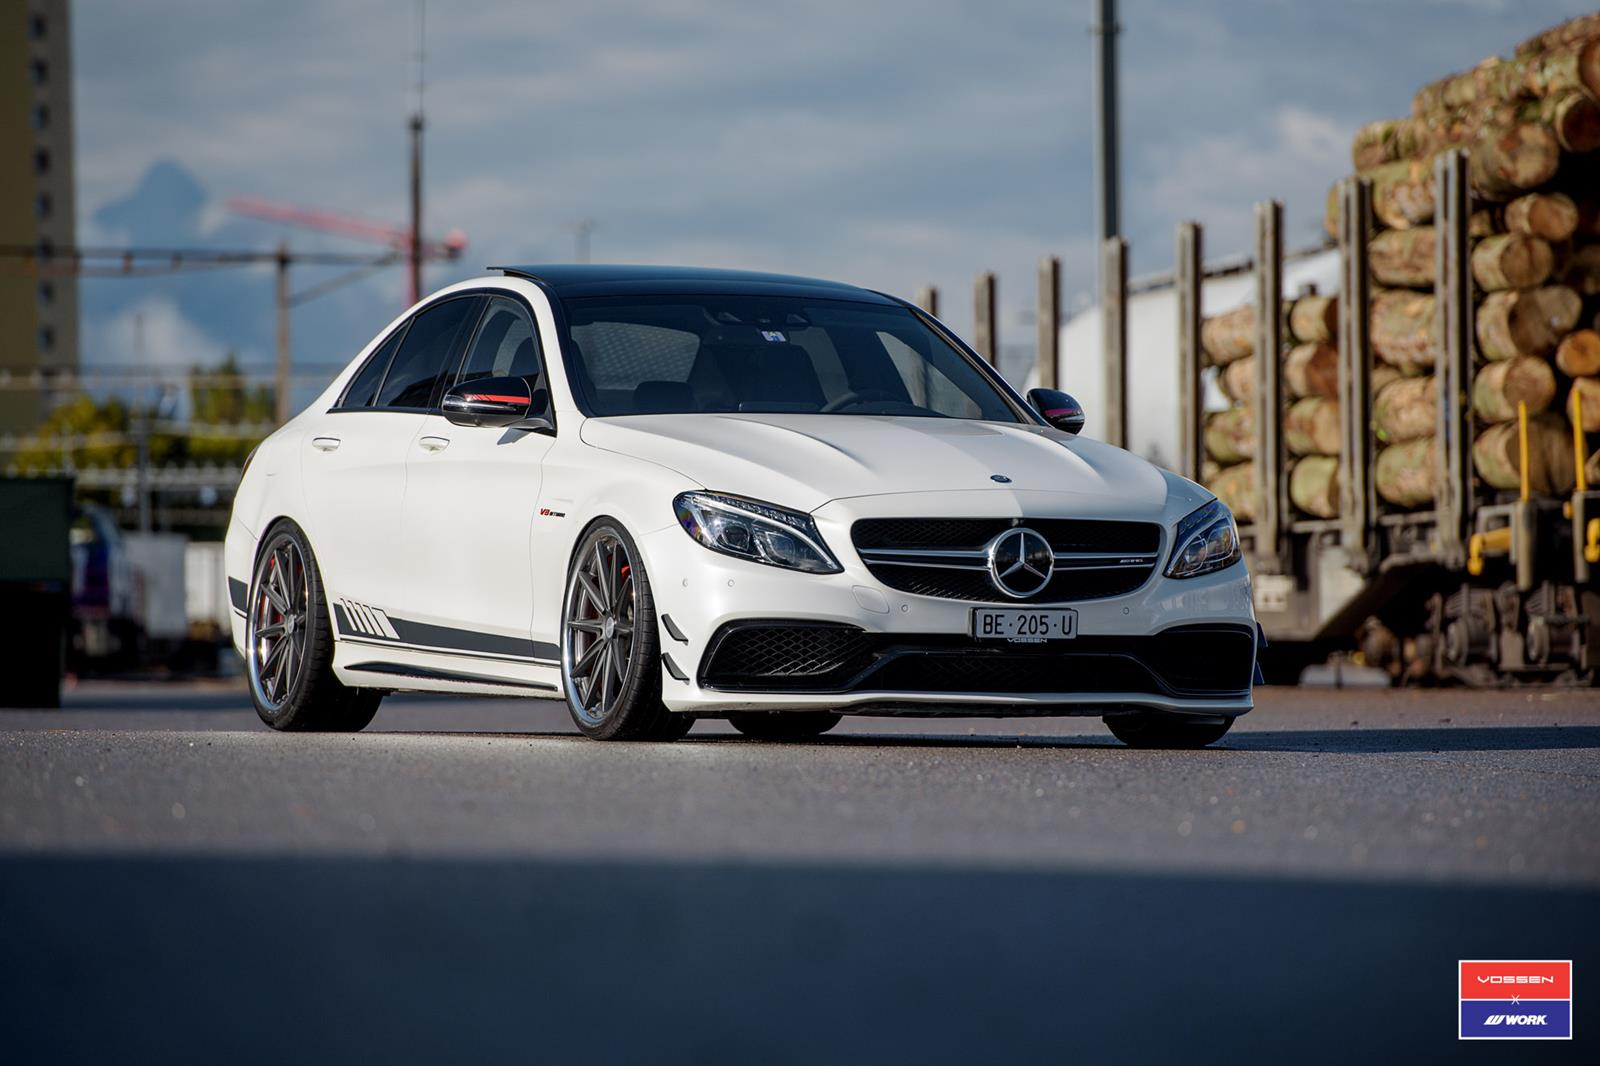 mercedes benz c class vossen x work series vws 1 vossen wheels. Black Bedroom Furniture Sets. Home Design Ideas